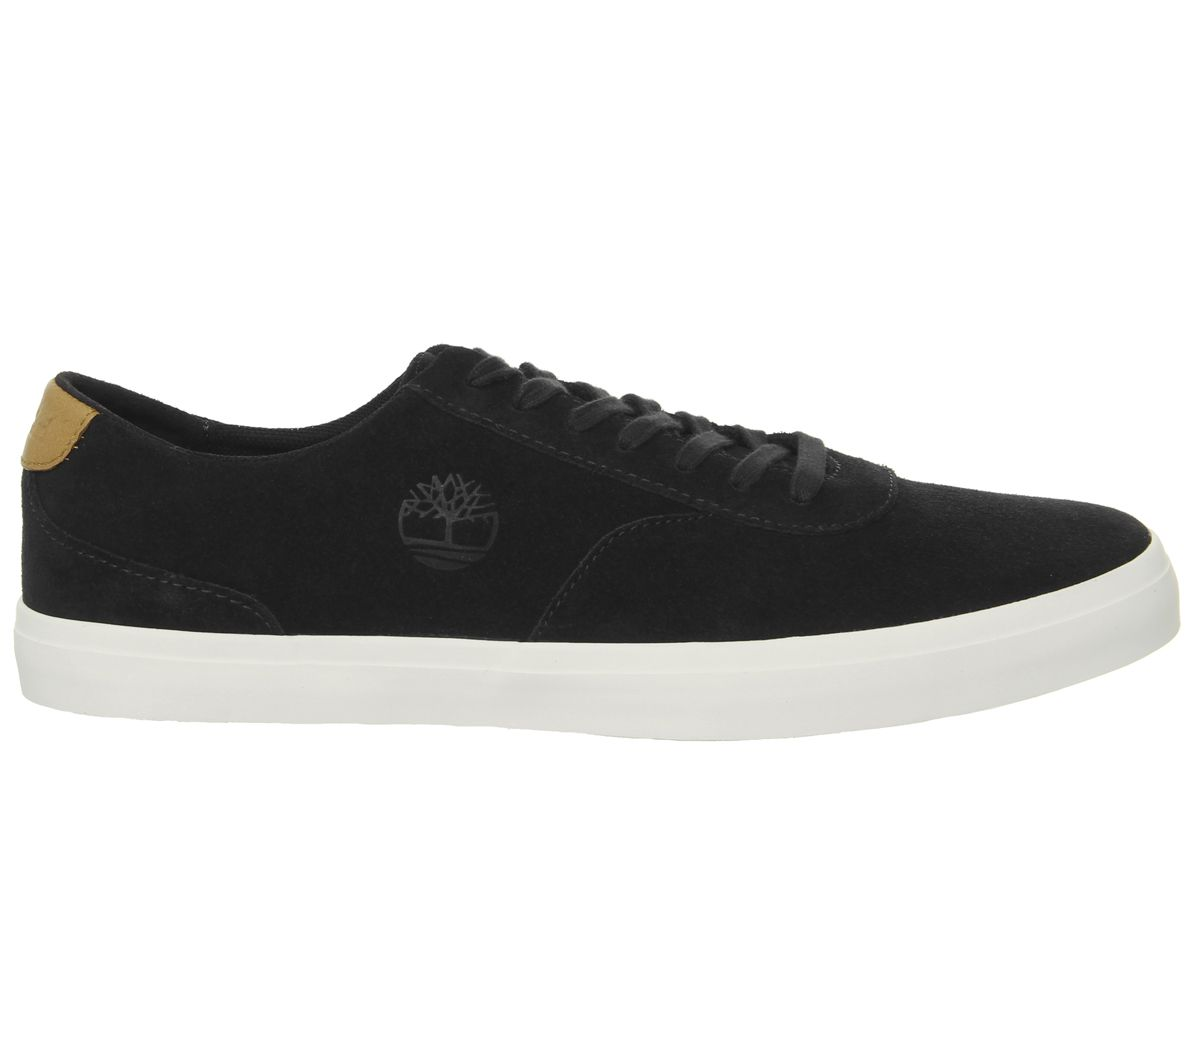 Timberland-Union-Sneakers-Exclusive-Black-Trainers-Shoes thumbnail 18